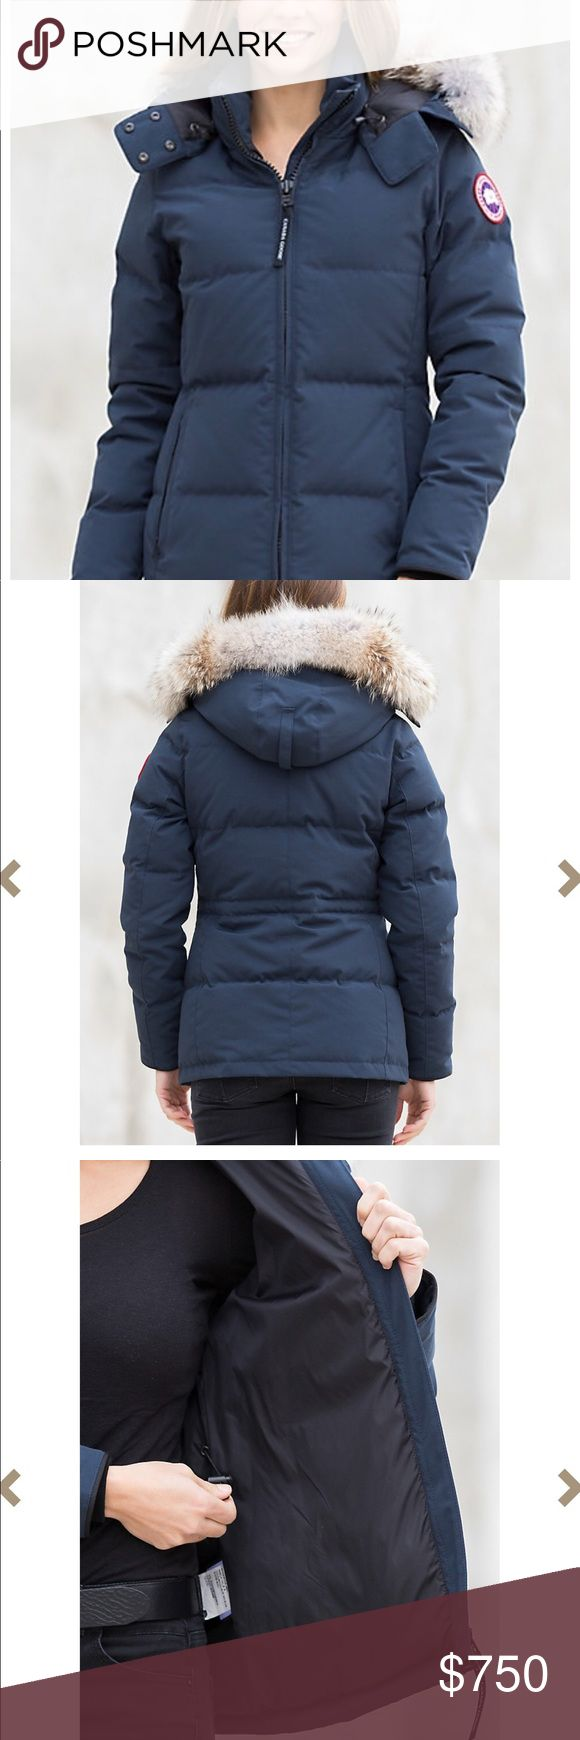 "NWT Navy Canada Goose ""Chelsea"" Parka New never been worn! Got as a gift and Its too big on me😫! I'll be shipping it to you the same way Neiman shipped it to me, taking off their label sticker and putting on the posh one! Priced low for a quick sale! ASK FOR EXTRA PHOTOS & QUESTIONS BEFORE PURCHASE, ALL SALES FINAL, NO RETURNS 🚫 Canada Goose Jackets & Coats Puffers"